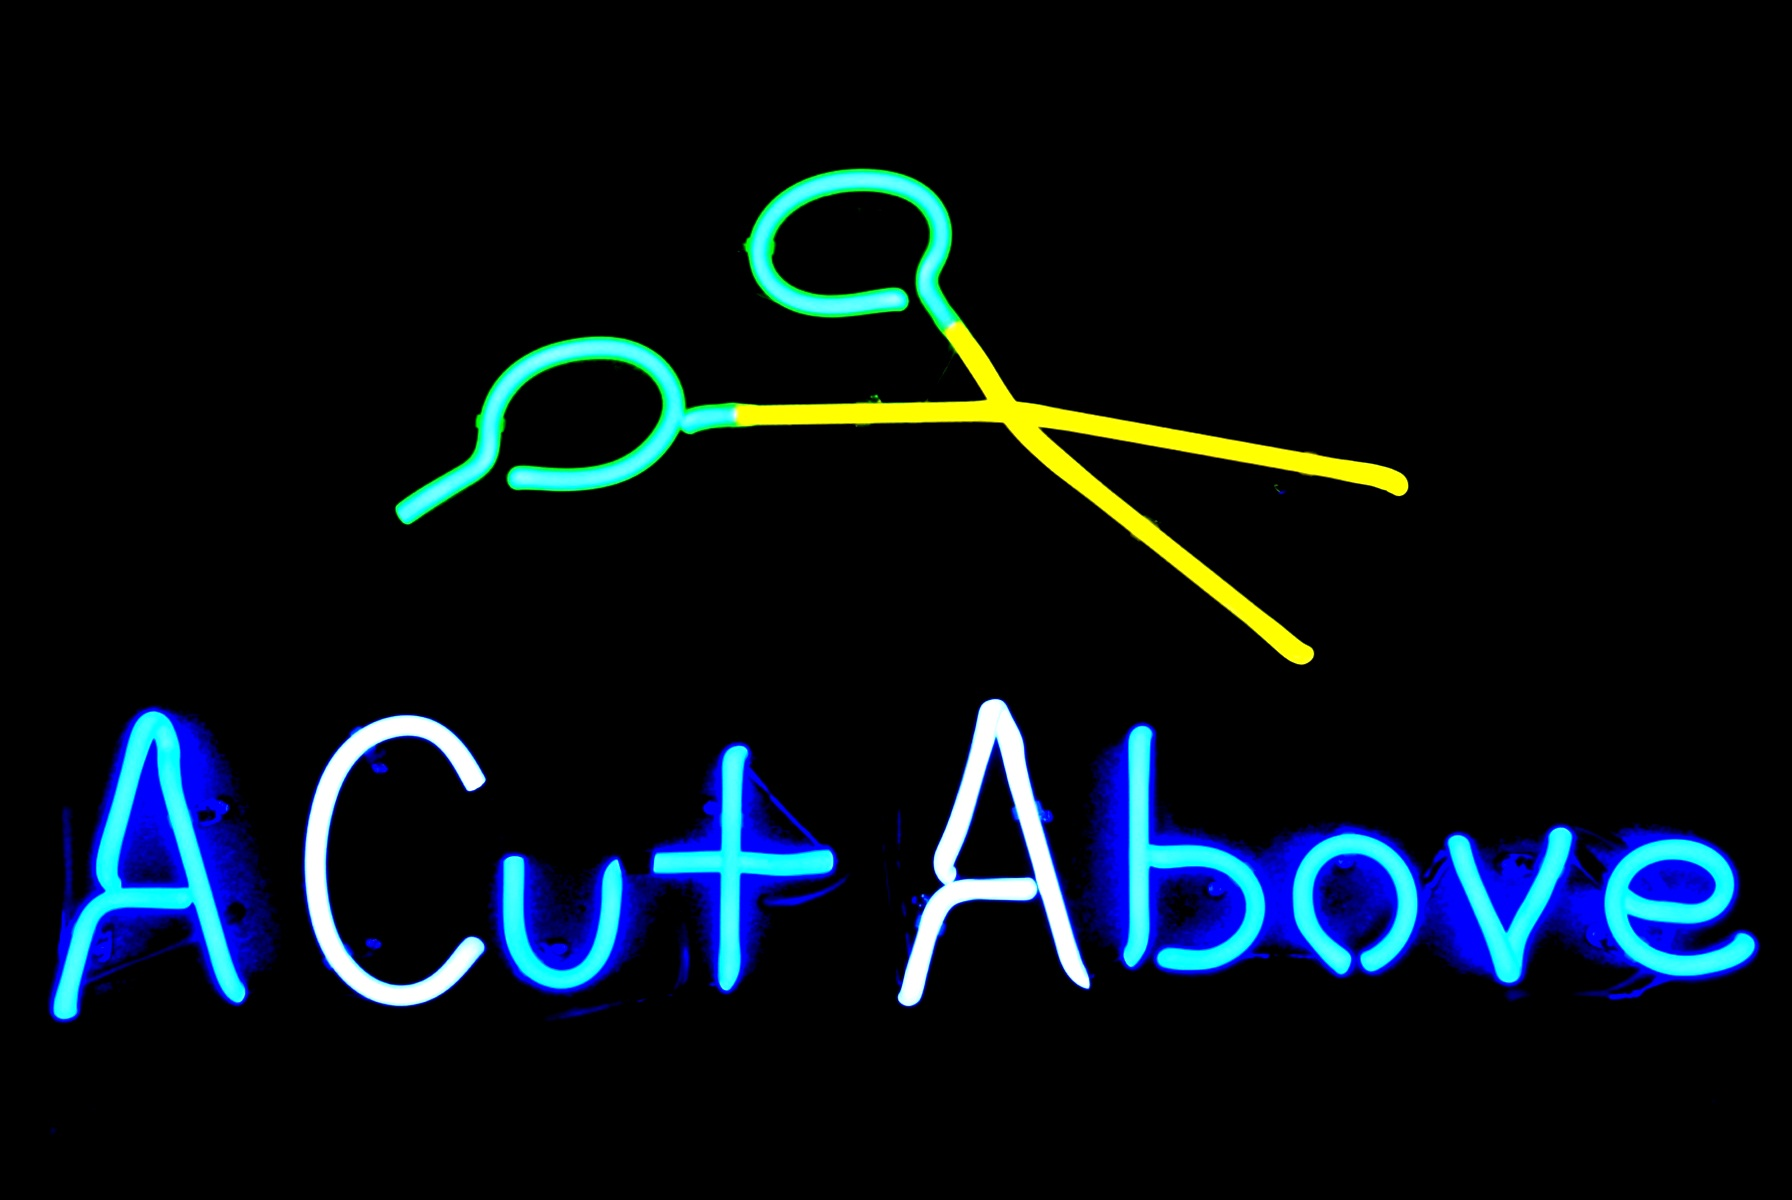 A Cut Above - Commercial Neon Sign.jpg